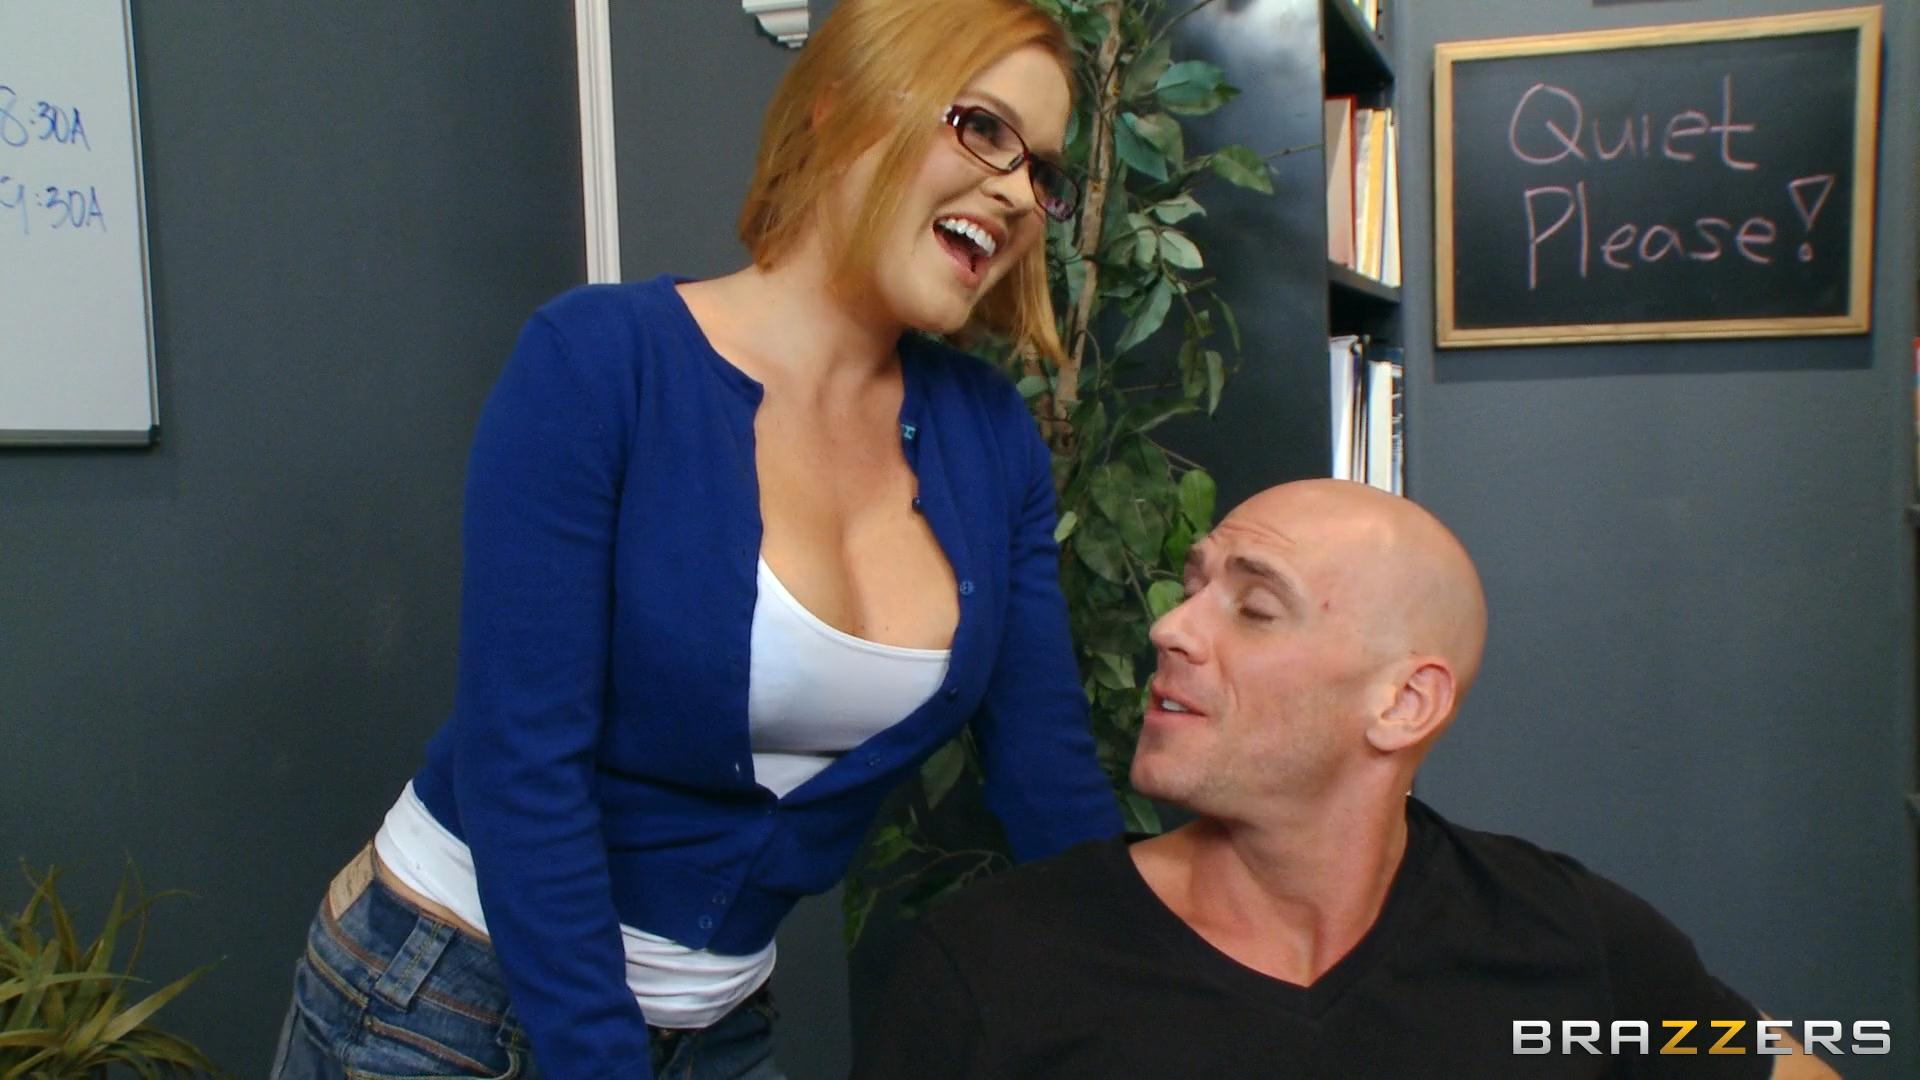 Very Naughty And Pornographic Concentration Test For Krissy Lynn